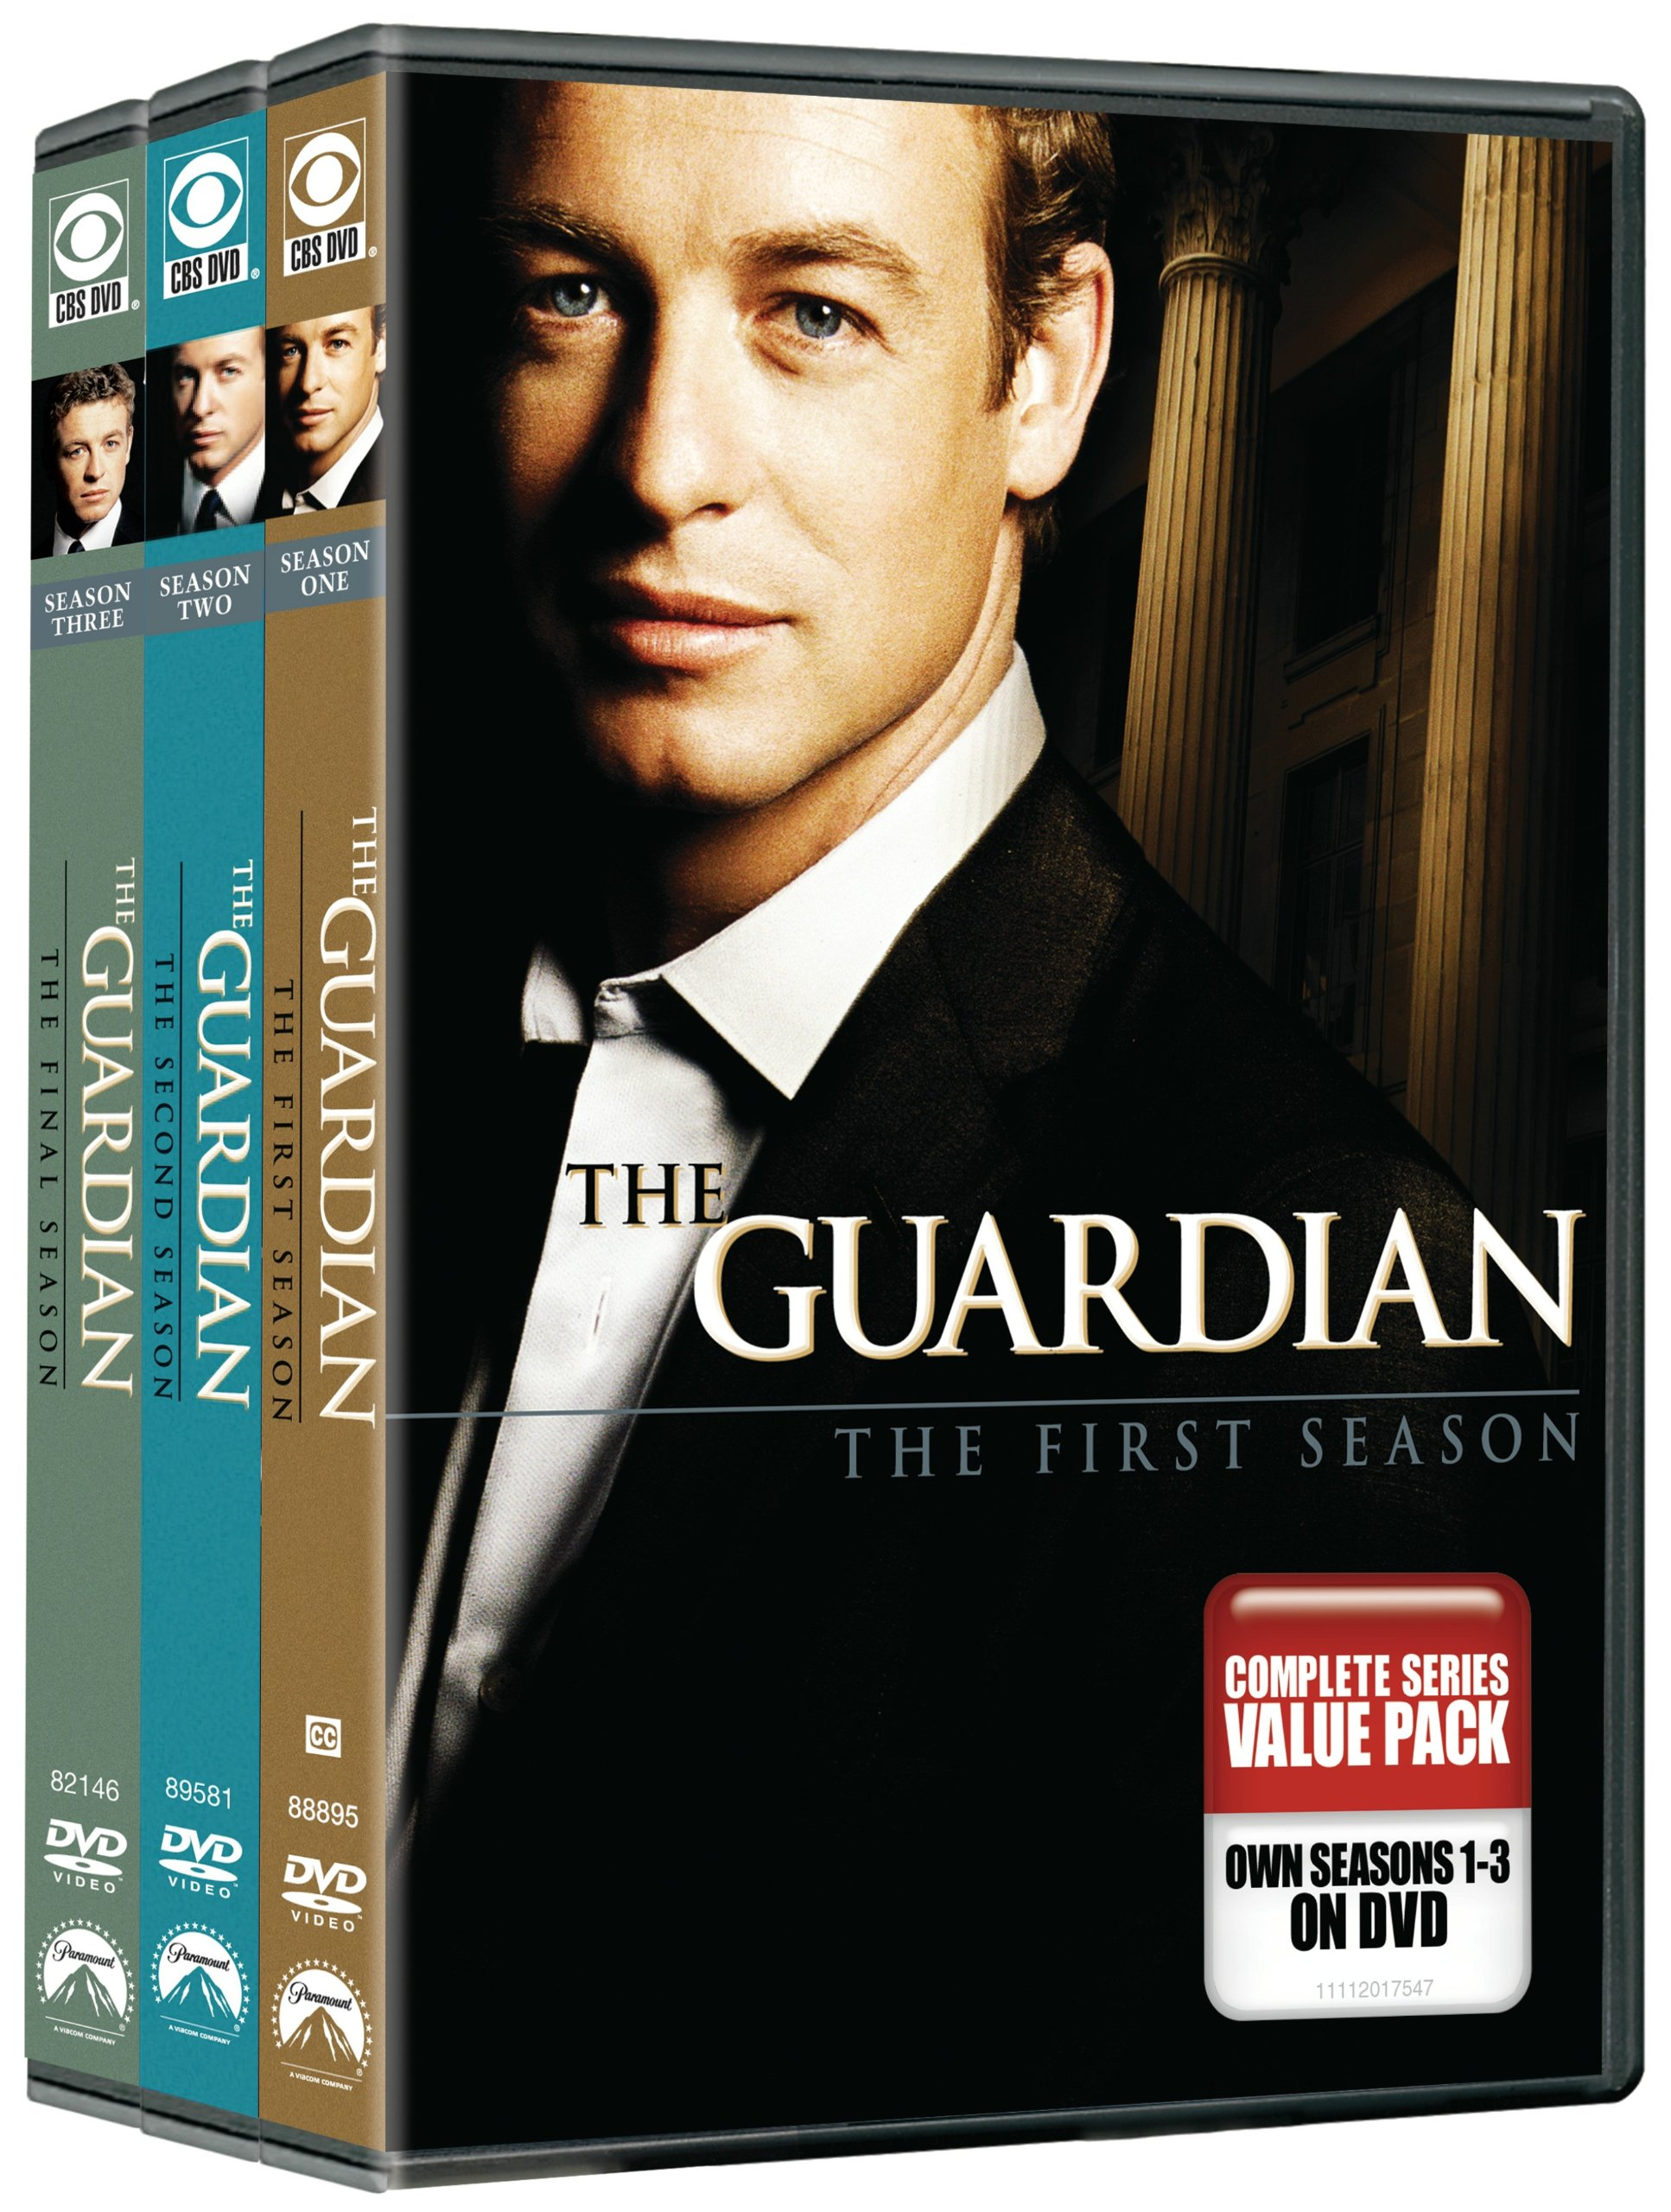 The Guardian: Complete Series